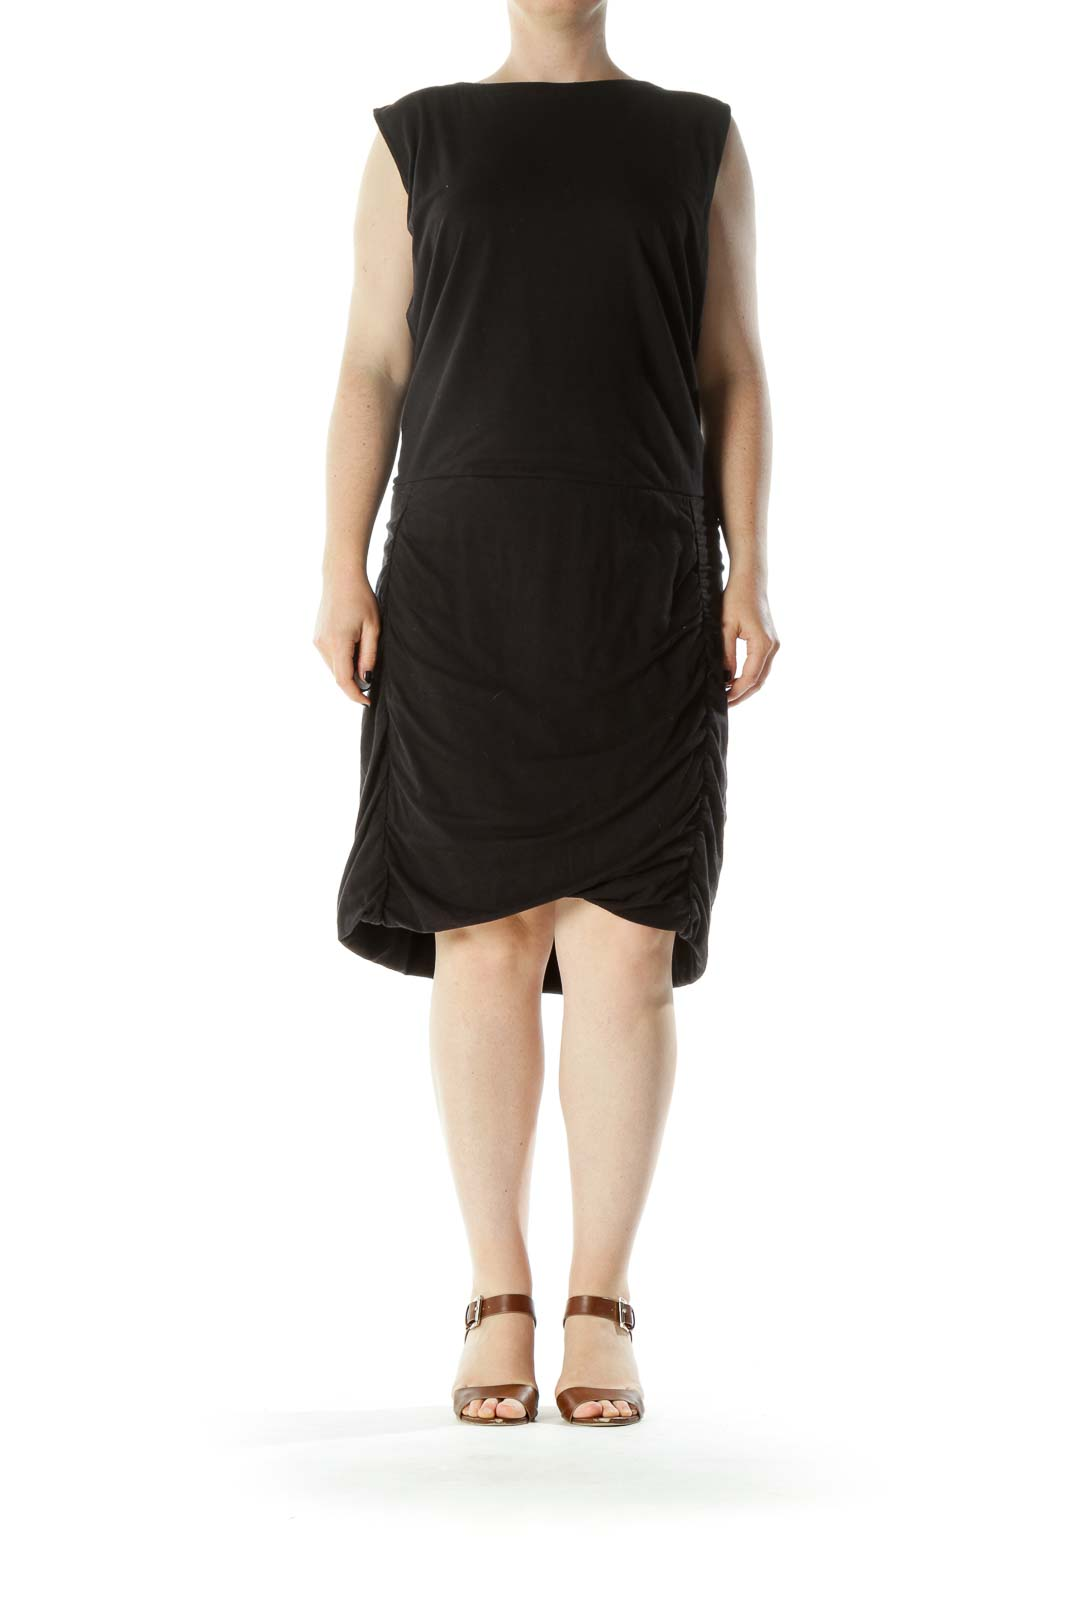 Black Boat Neck Cotton Jersey Dress